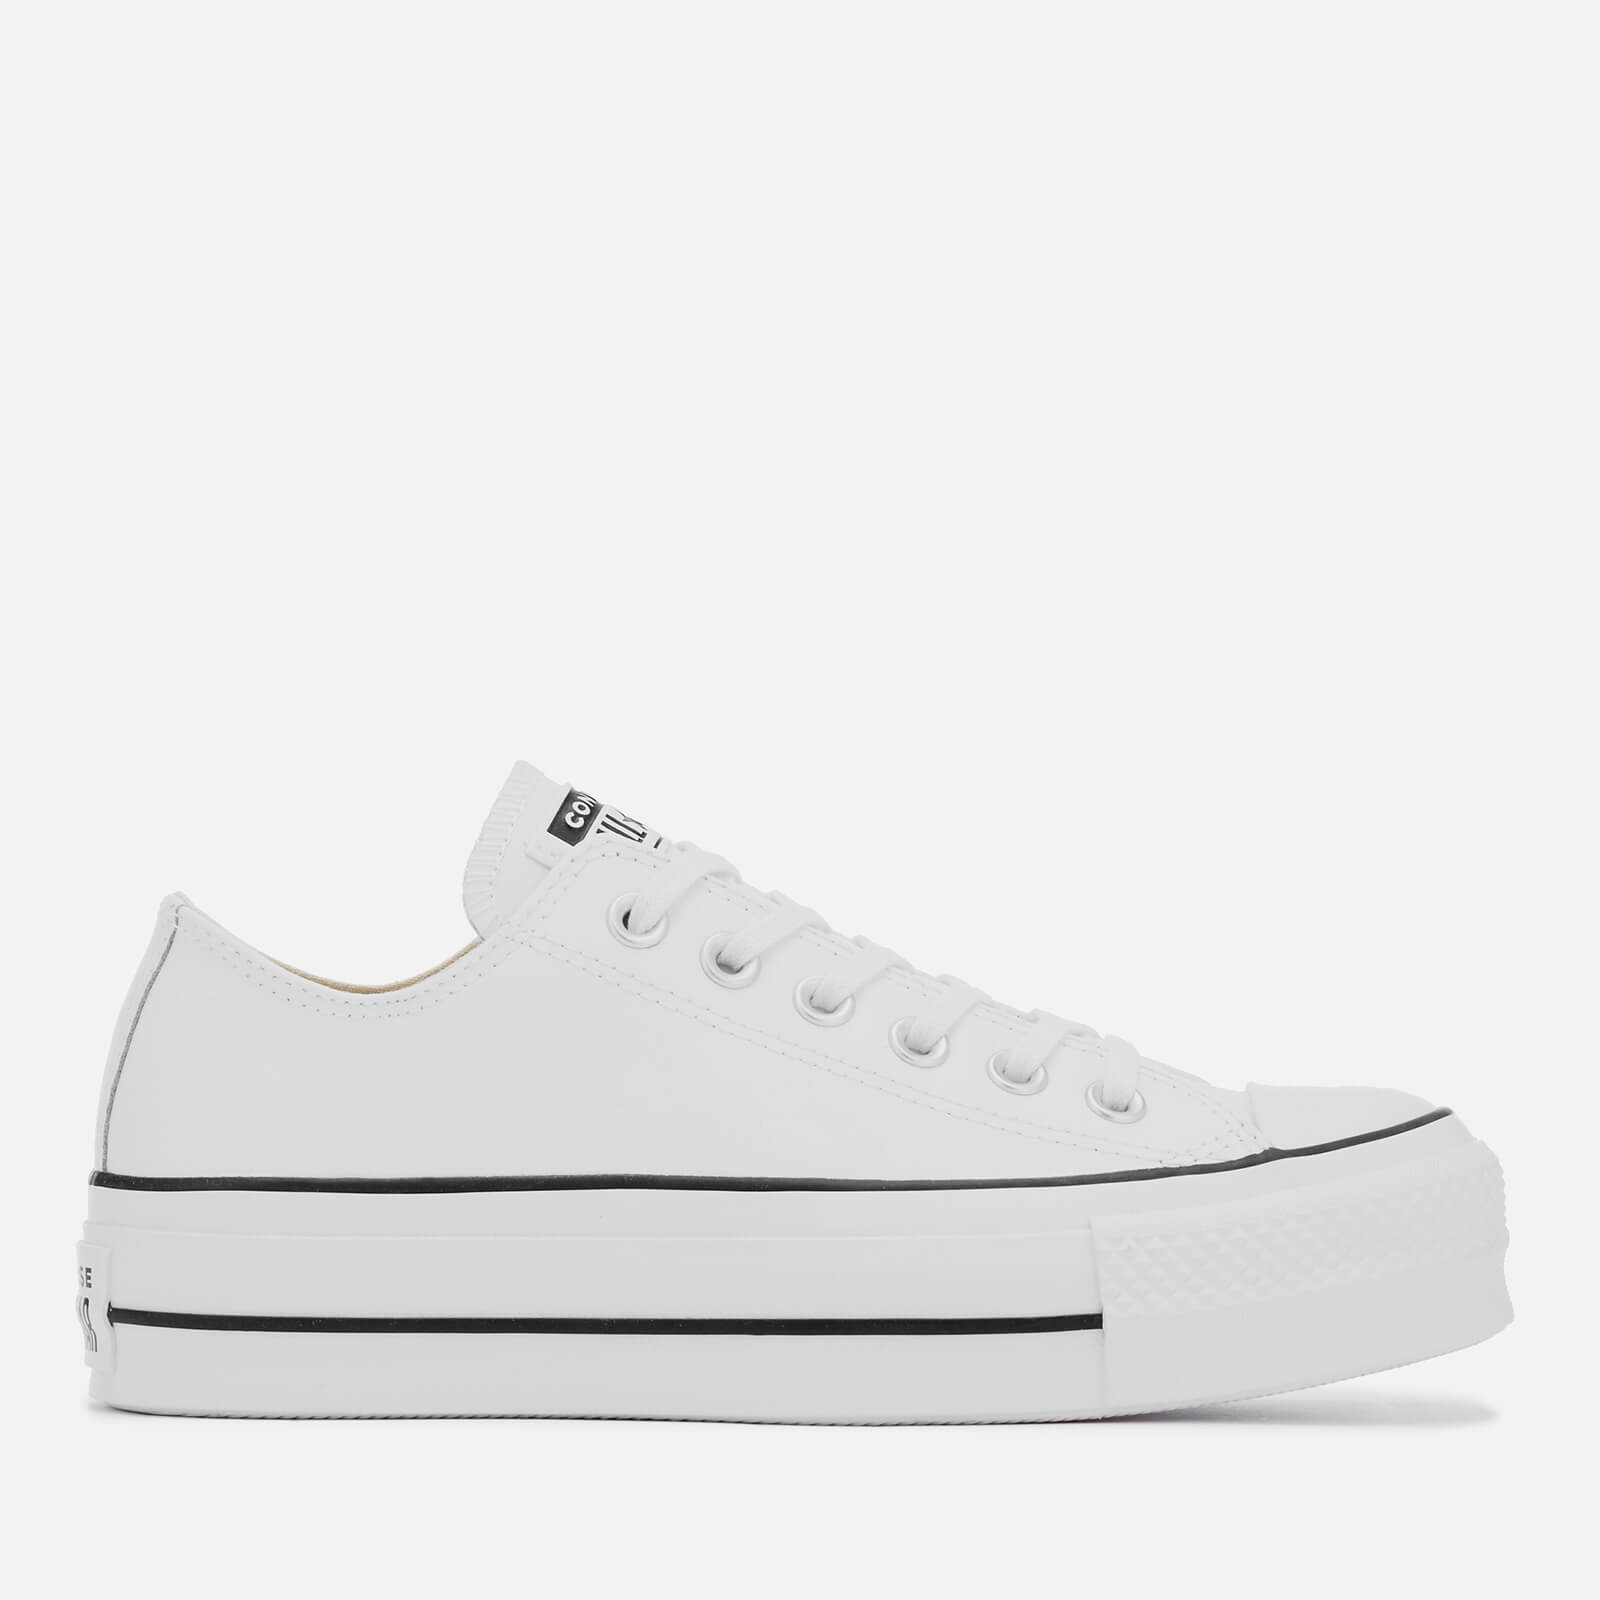 0a95c1ef59f Converse Women s Chuck Taylor All Star Lift Clean Ox Trainers - White Black  Womens Footwear